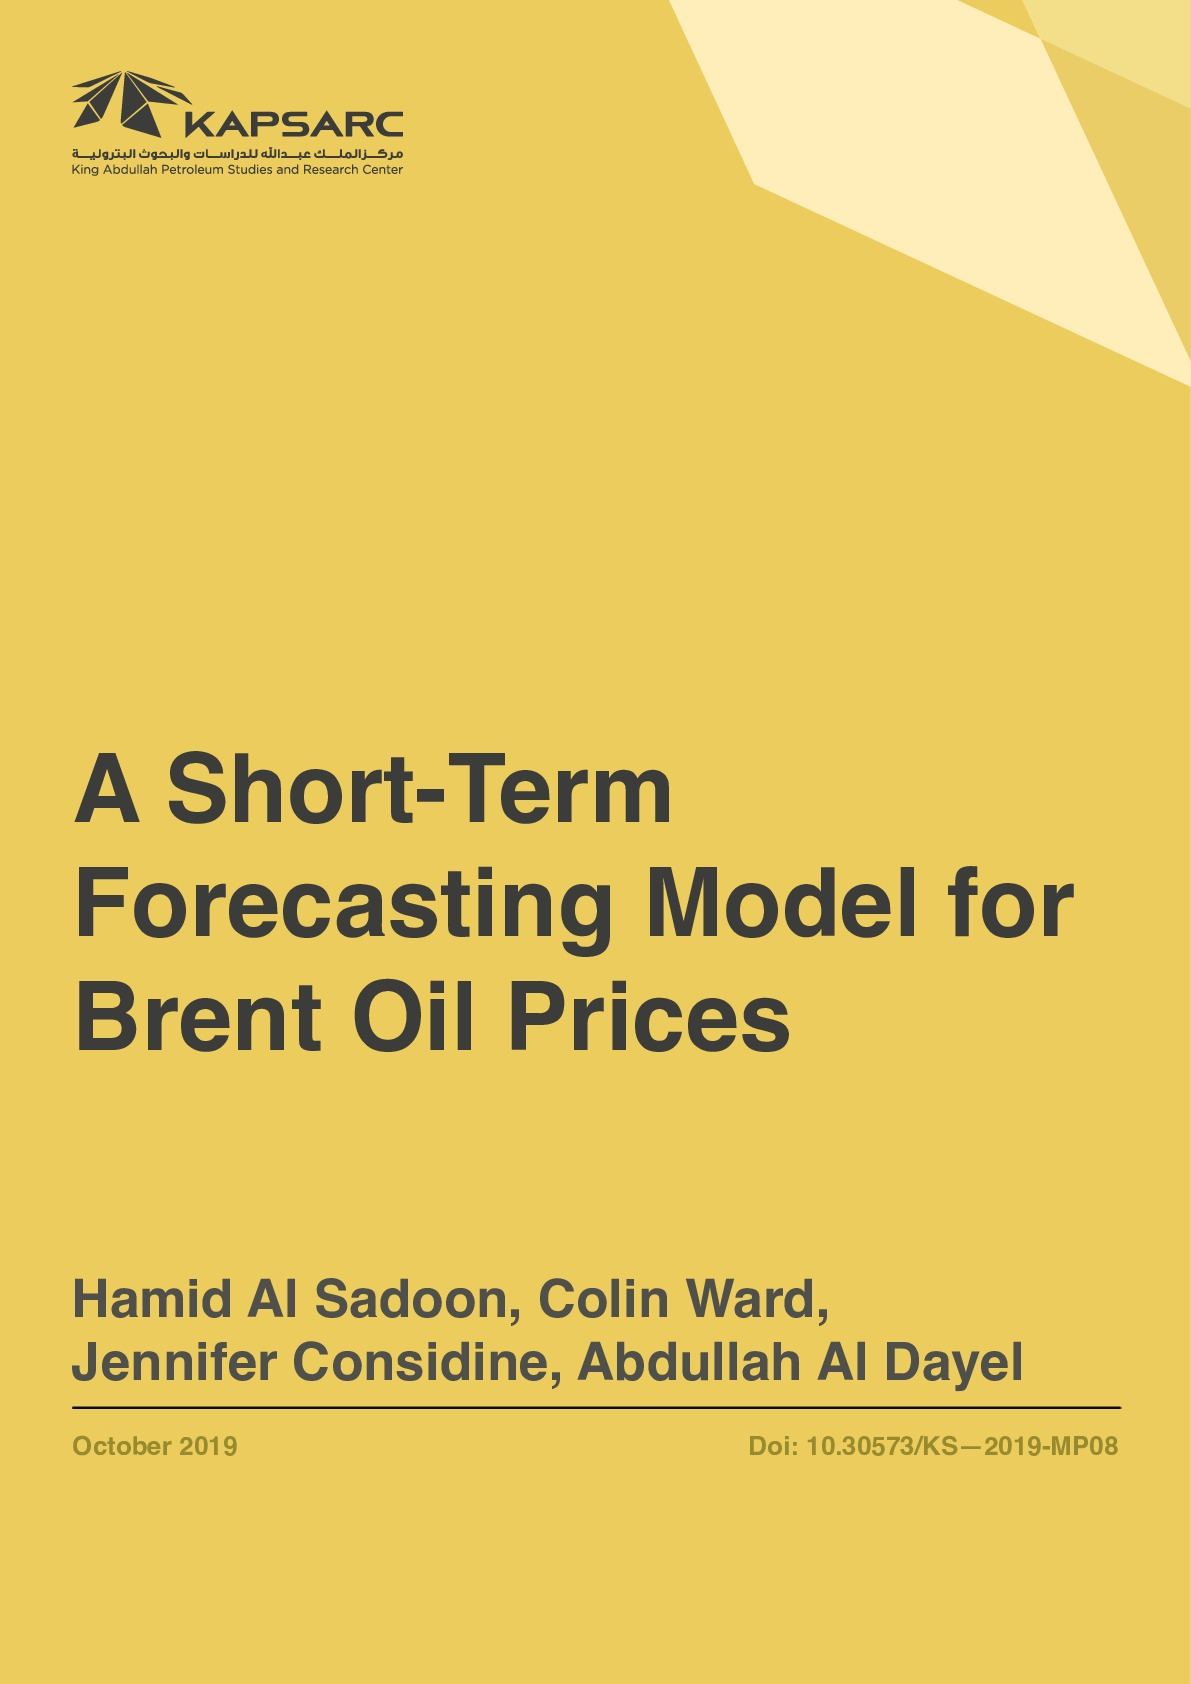 A Short-Term Forecasting Model for Brent Oil Prices